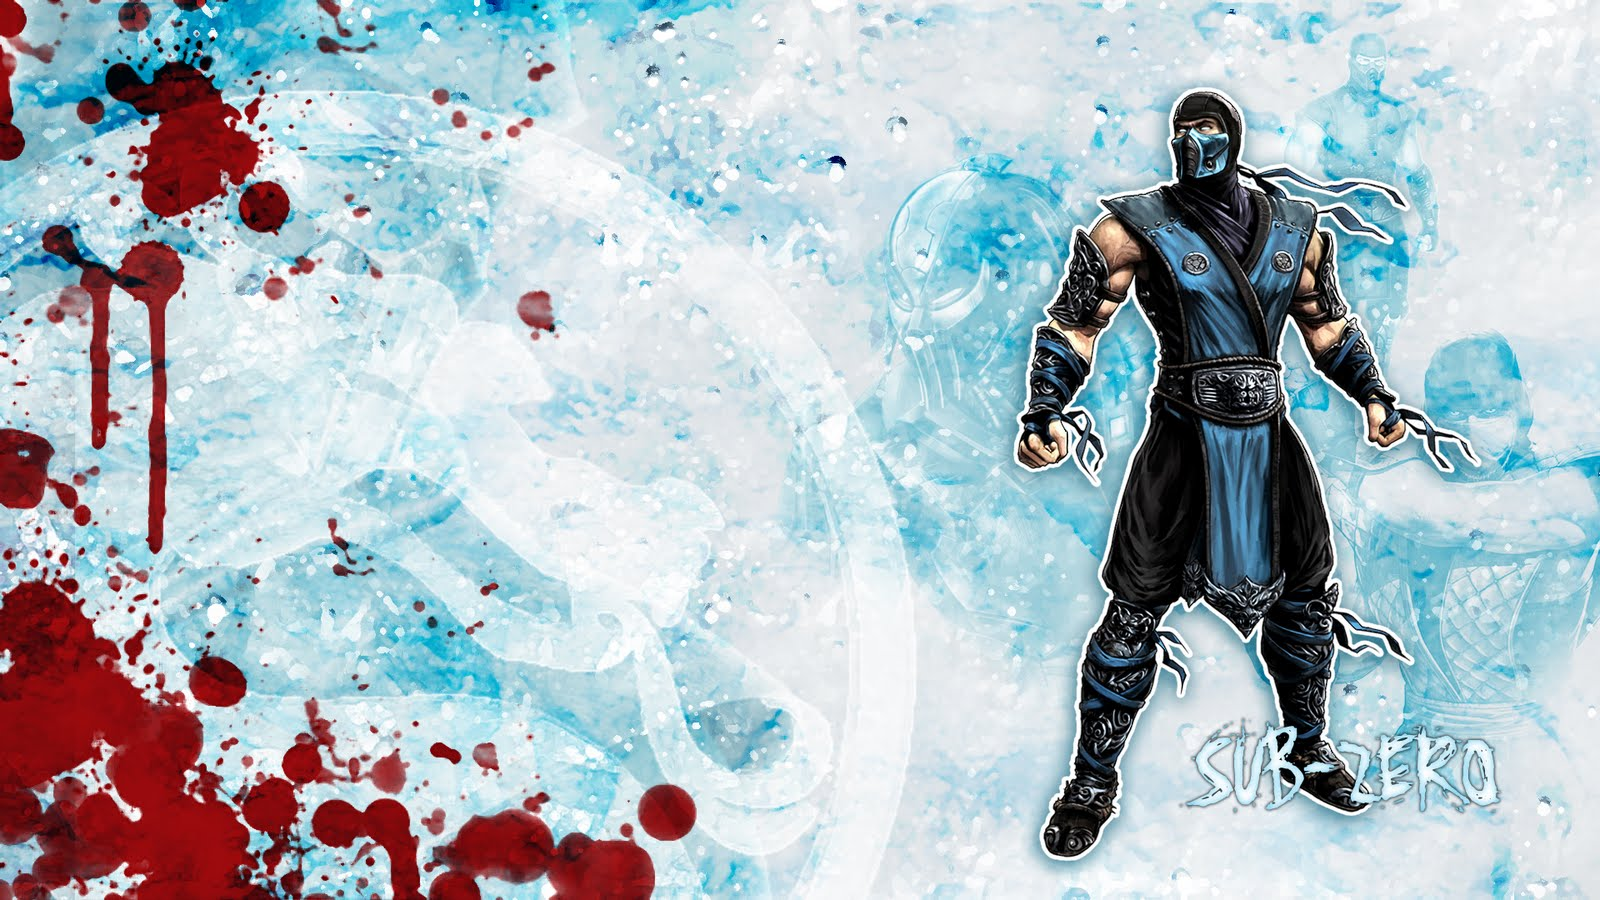 Mortal kombat HD & Widescreen Wallpaper 0.55562050477883